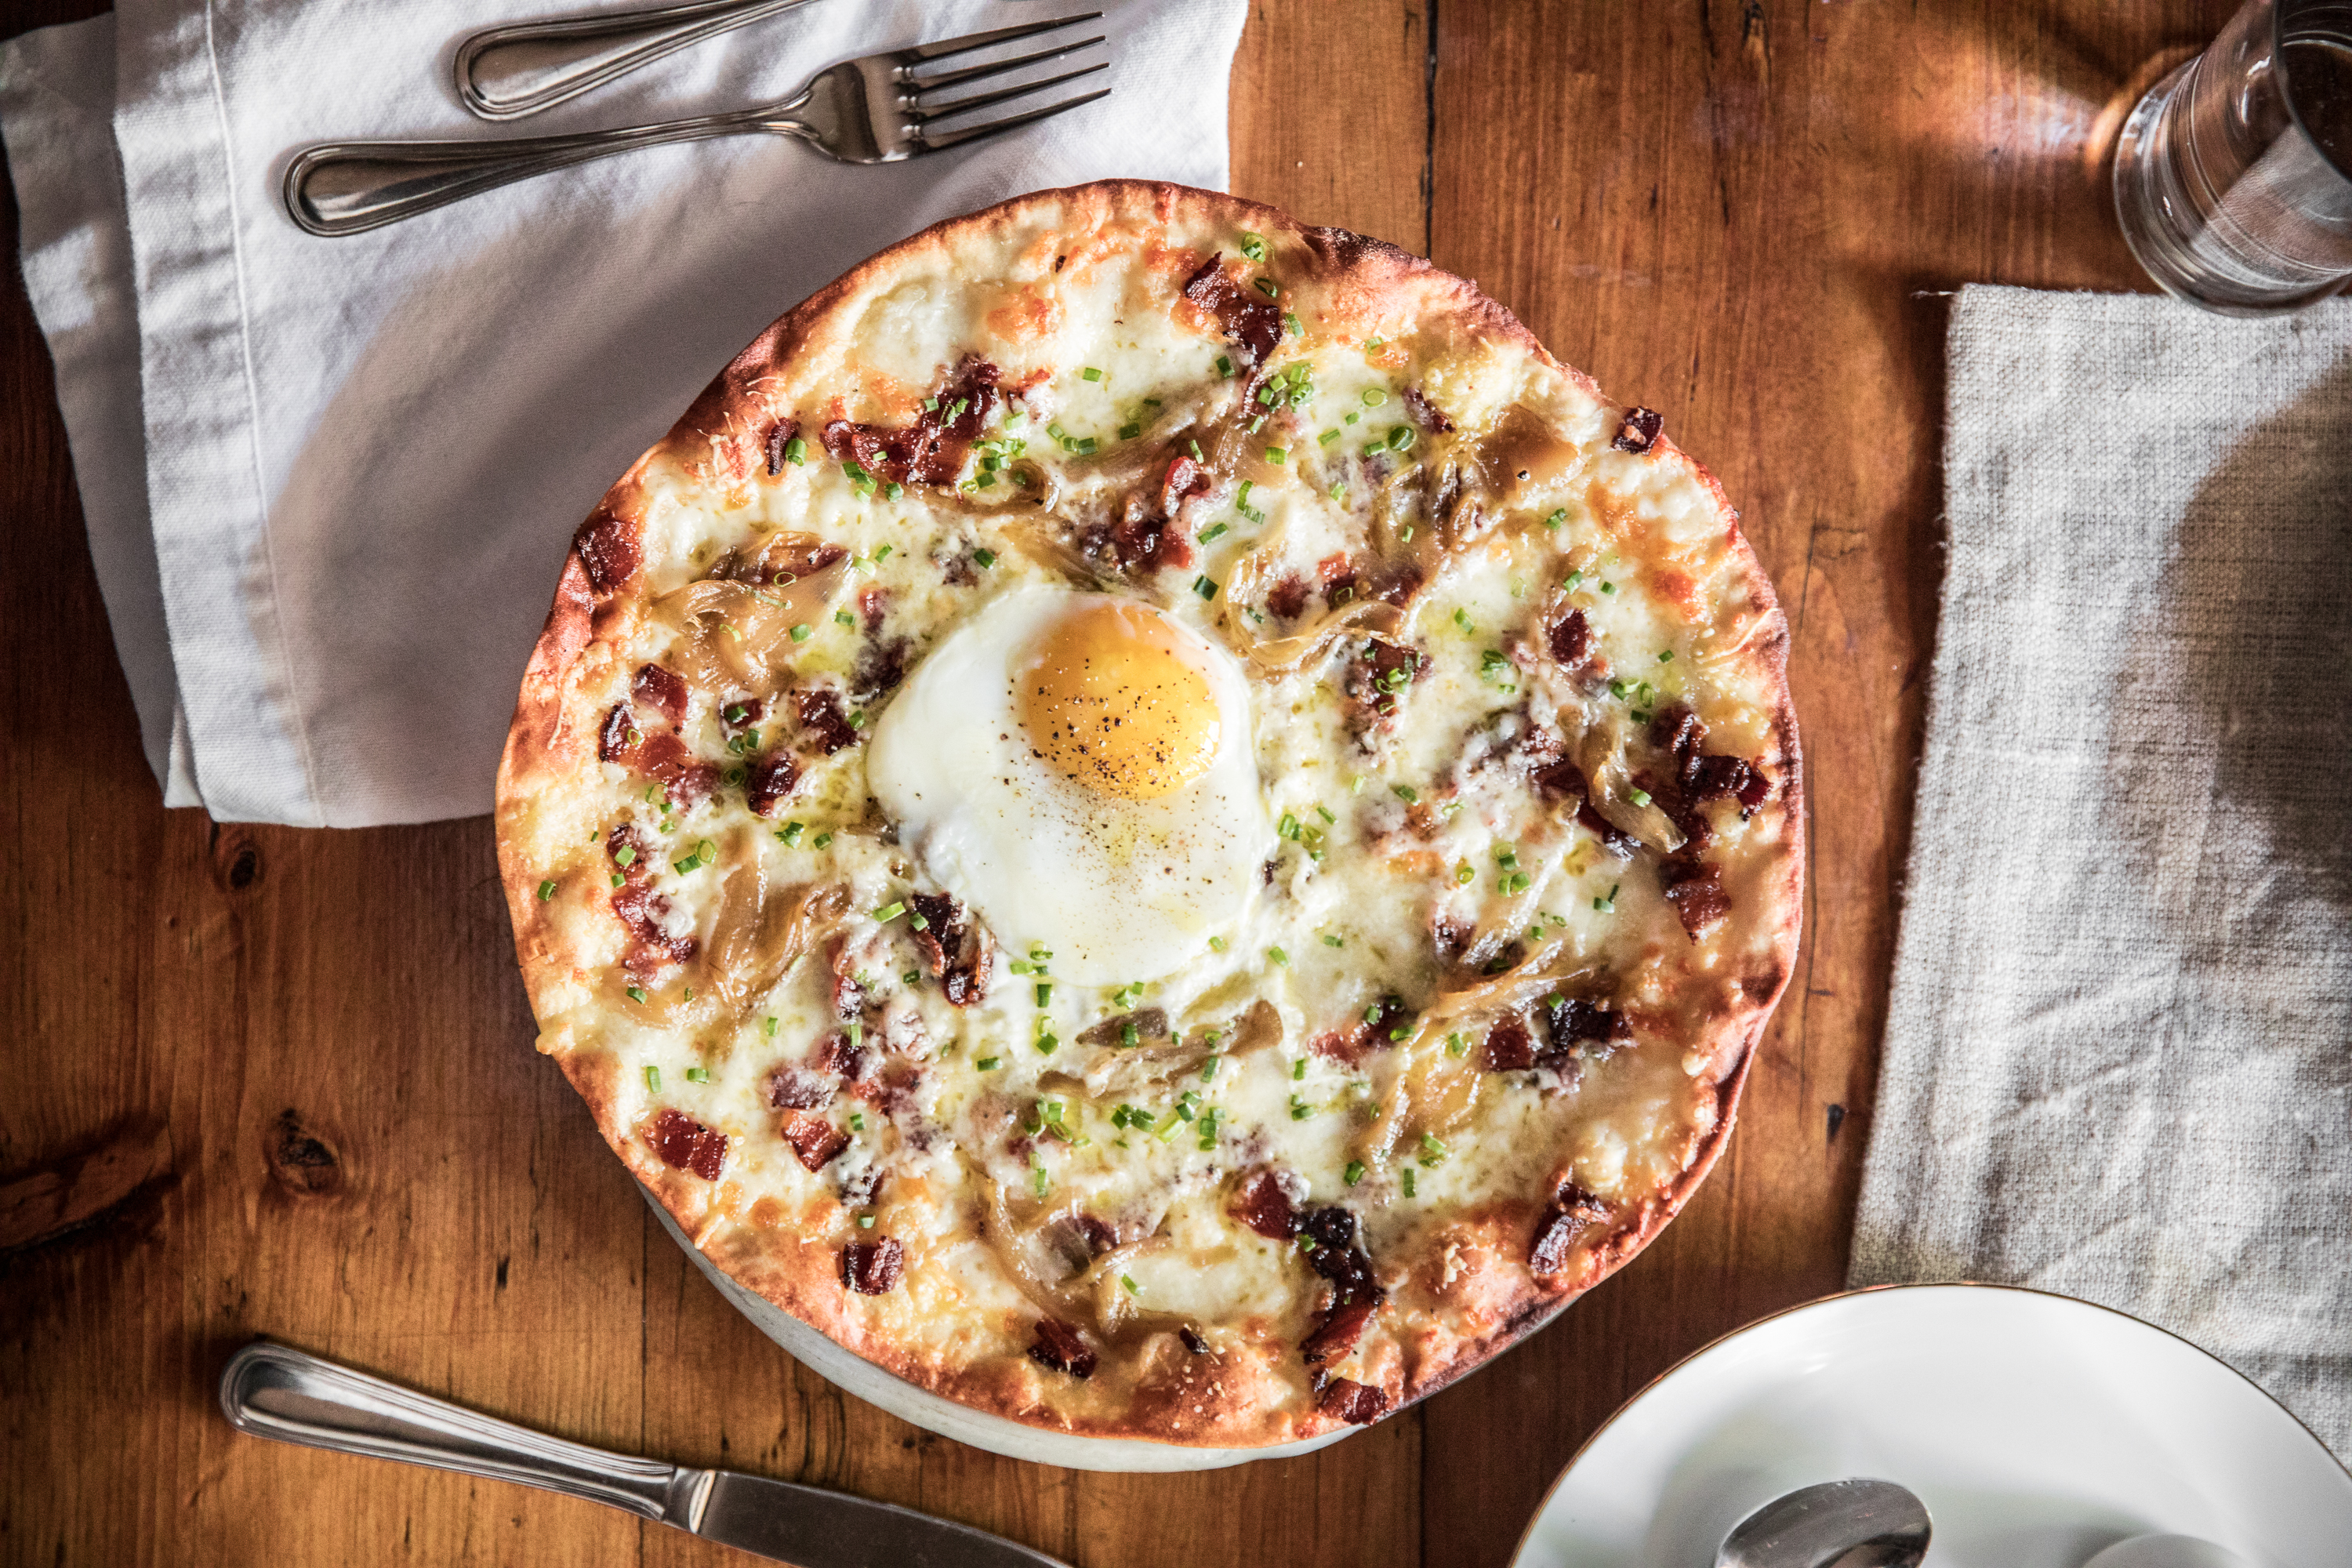 Breakfast Pizza with an egg on it